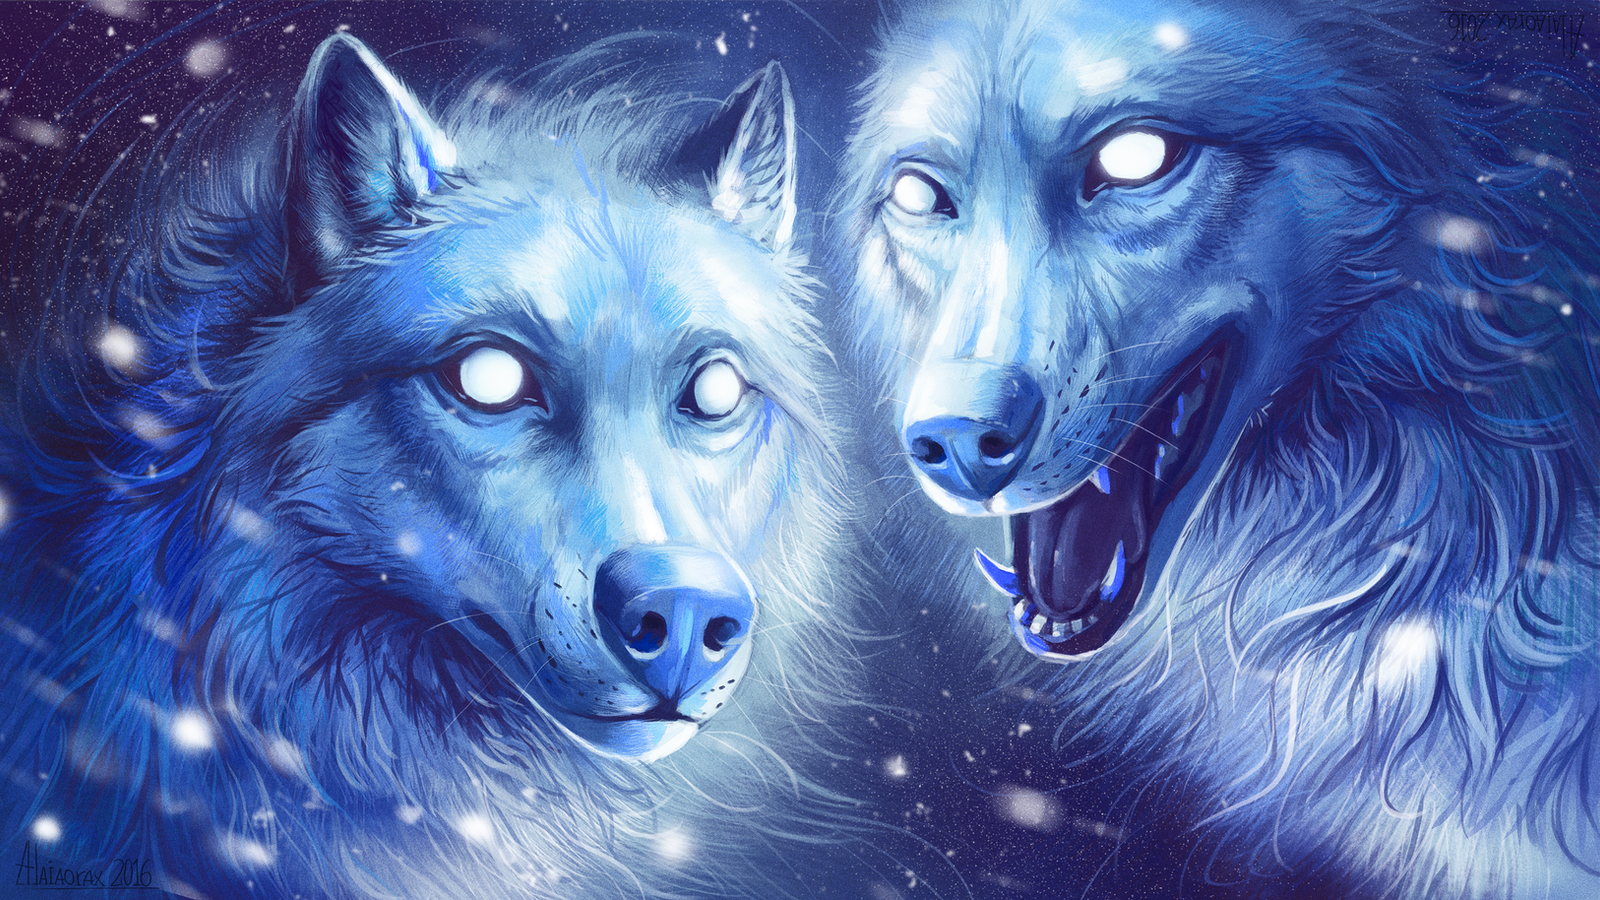 snow_wolves_by_alaiaorax-d9vww3l.png